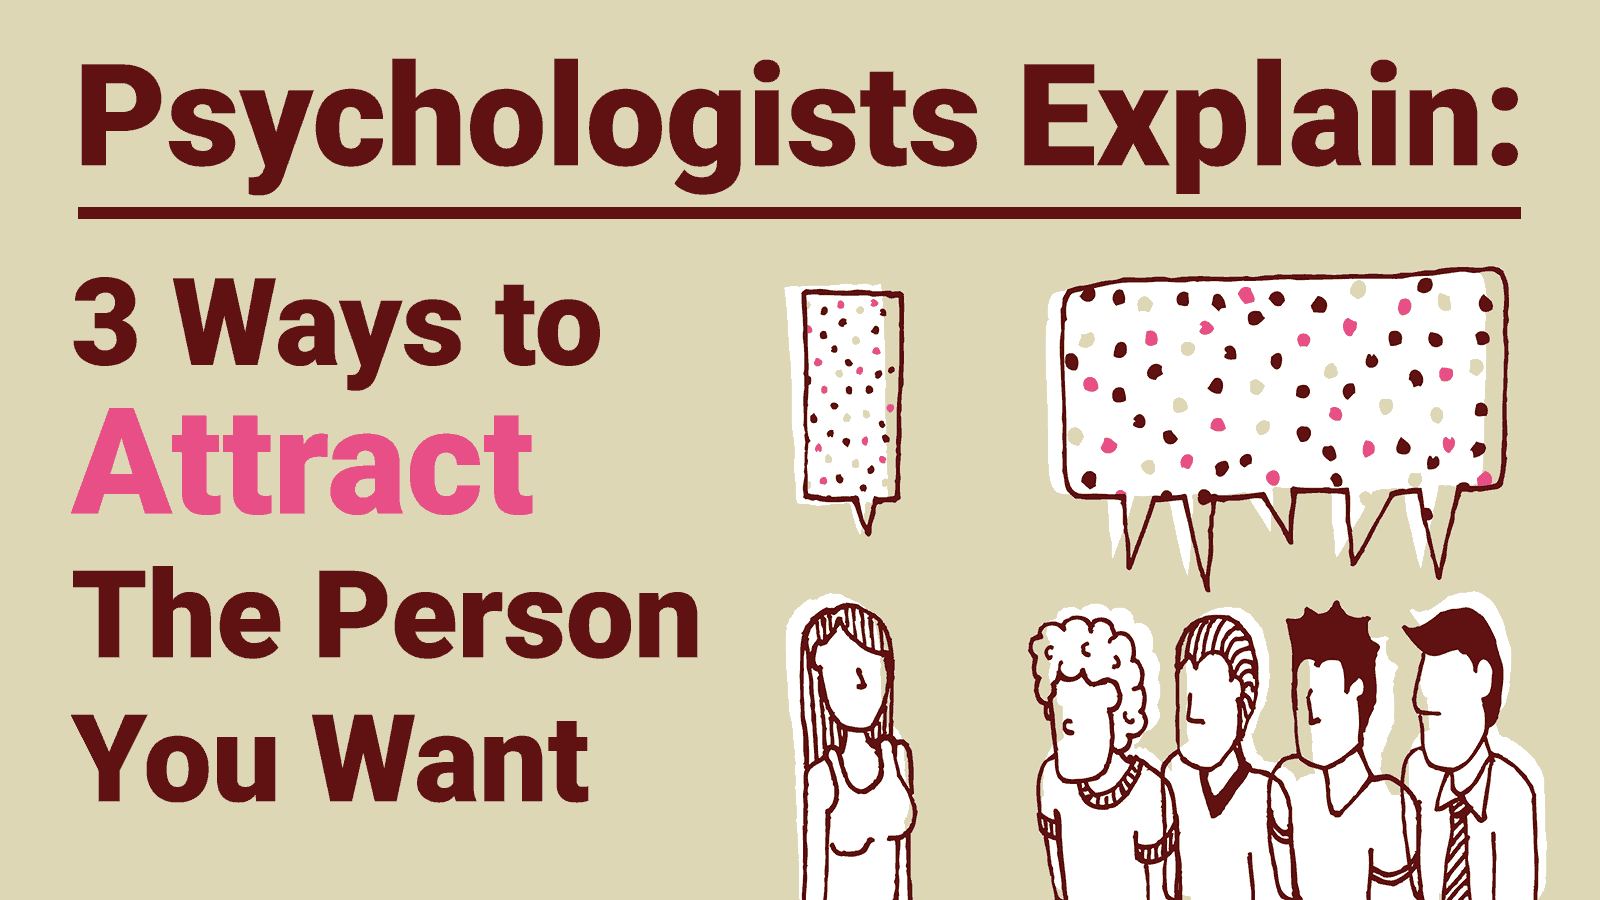 Psychologists Explain 3 Ways to Attract The Person You Want